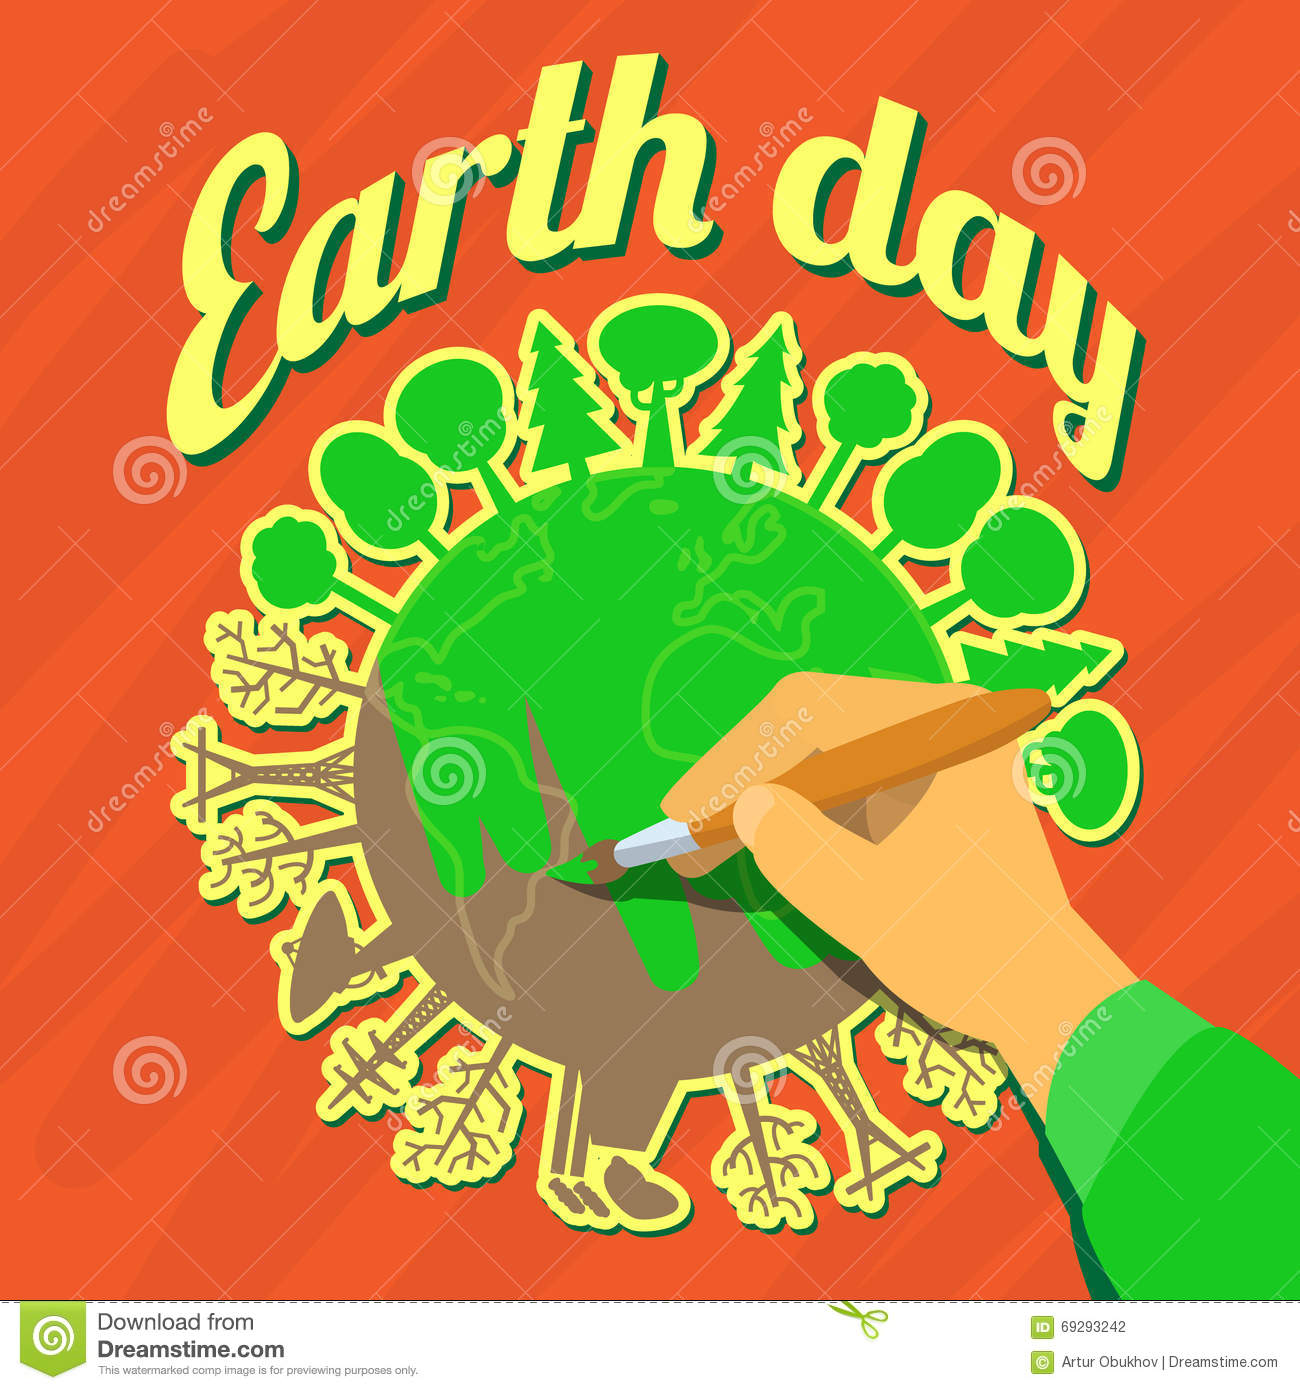 save planet earth Either the planets are correct in size and too close together, or the distances  between them are correct but the  on that scale, the earth will be 13 mm in  diameter, mercury will be 5 mm and pluto will be 23 mm, the size of a large  pinhead.